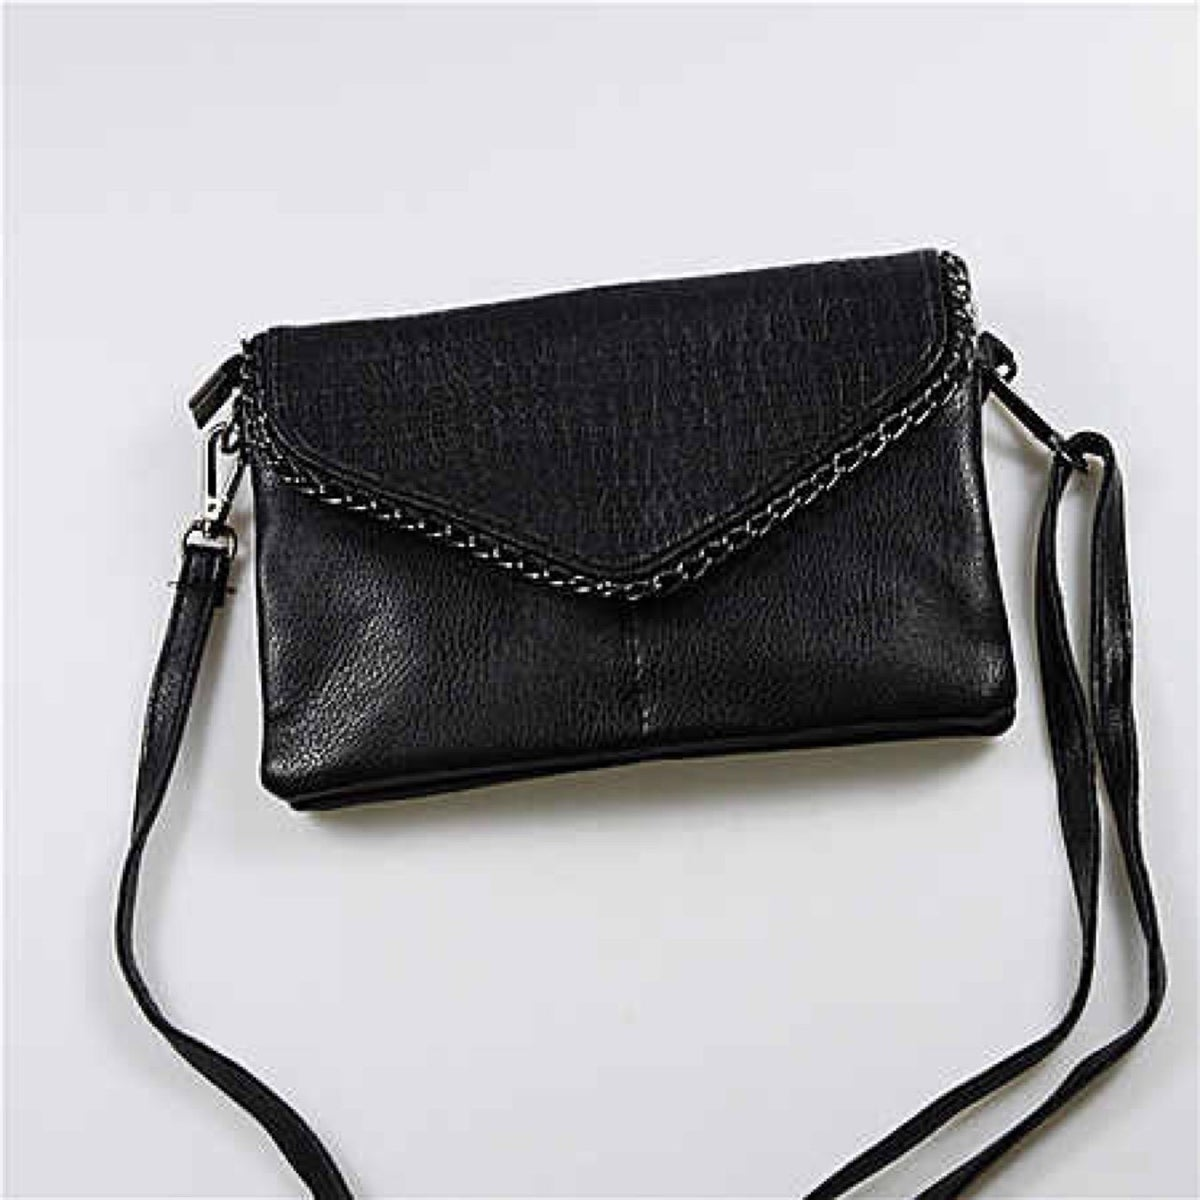 8c8ec2eadf3b Image of All black faux crocodile with chain detail clutch and over  shoulder bag.